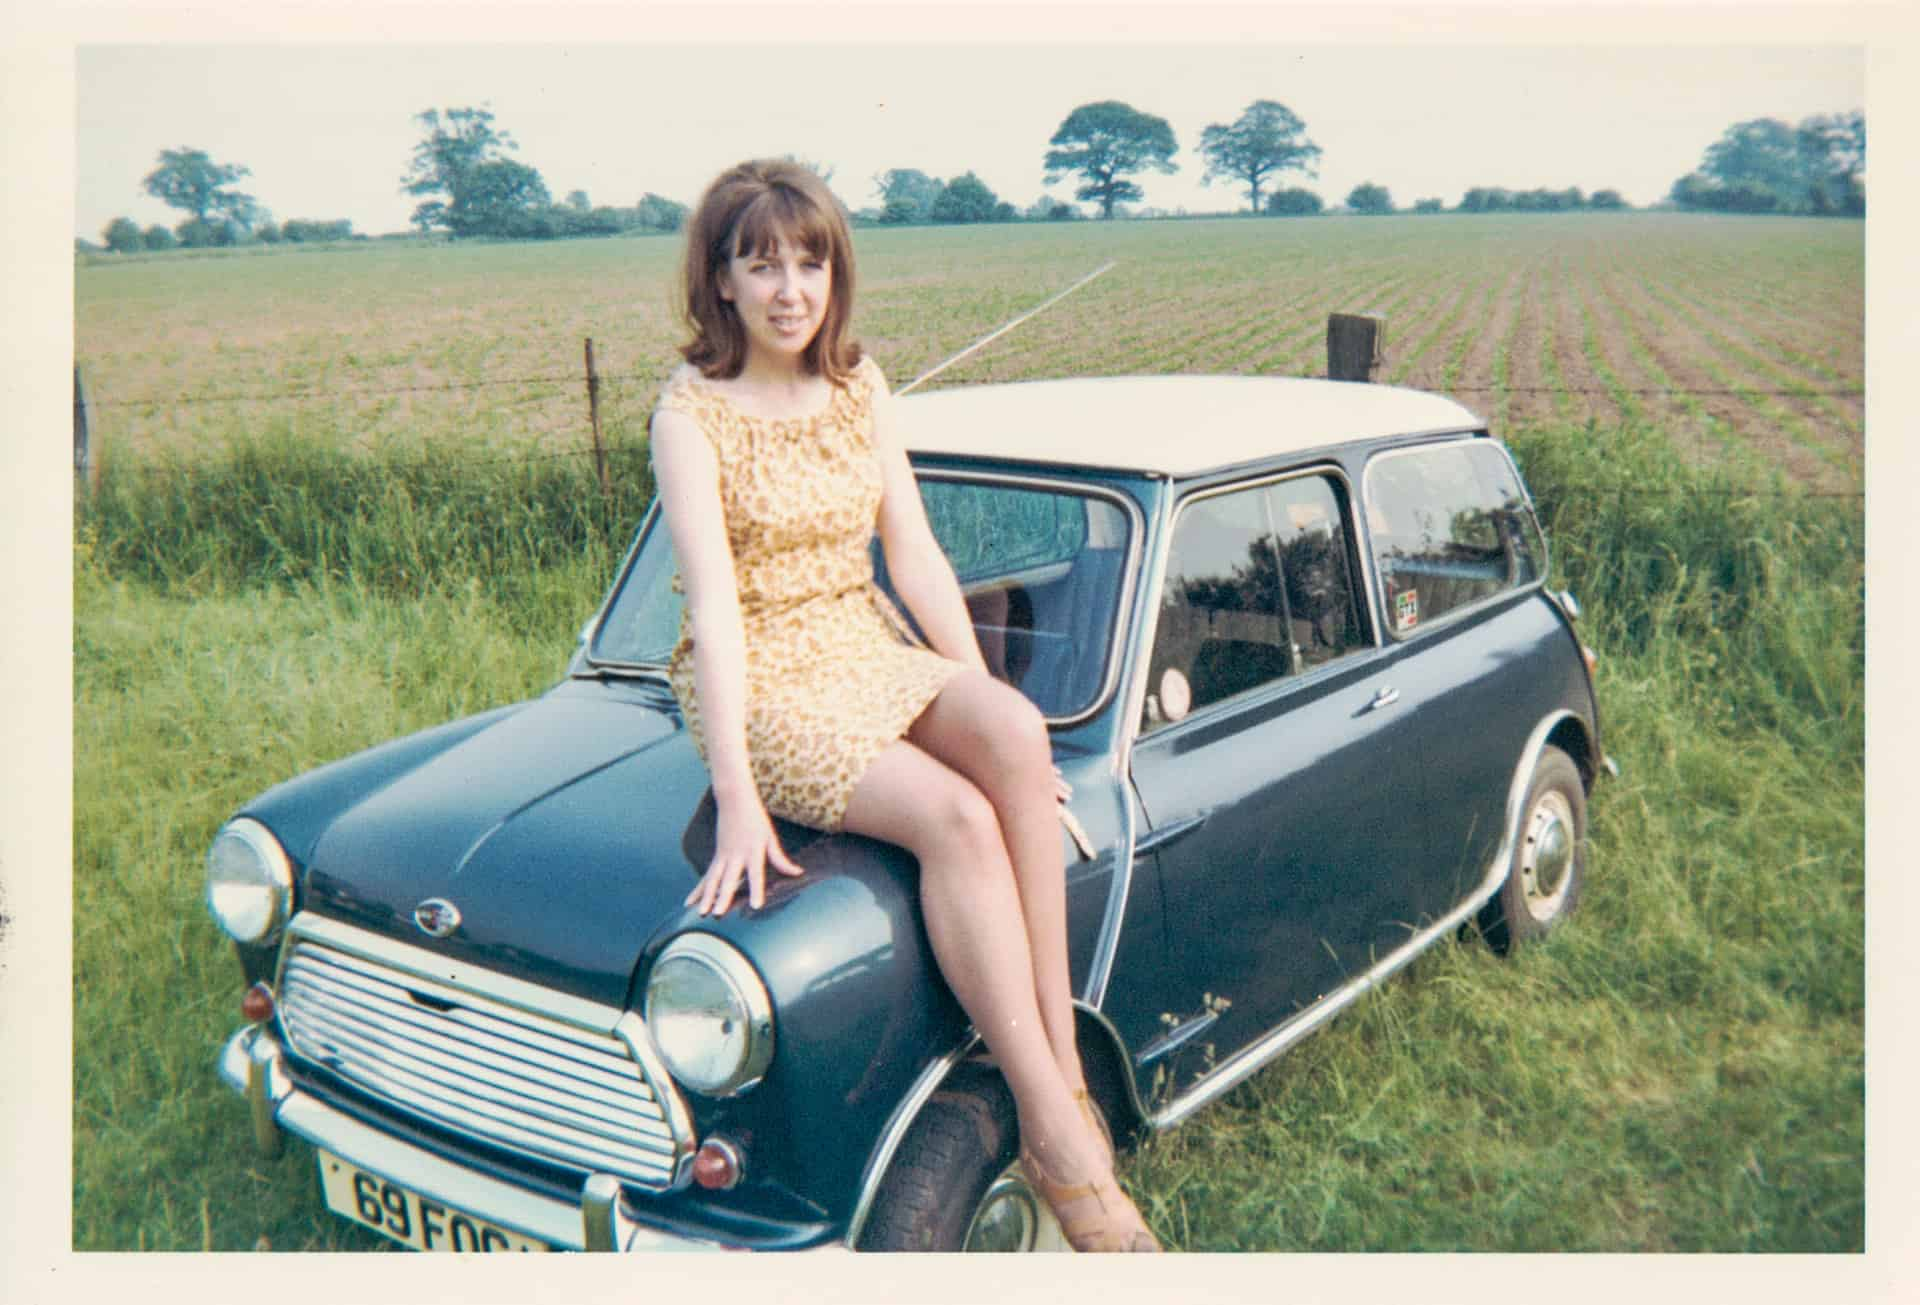 This is my wife Betty with my Mini taken in 1973. At the time we had just arrived in Curborough Racetrack where I had competed before. I used to do a lot of rallying with the cars back then.